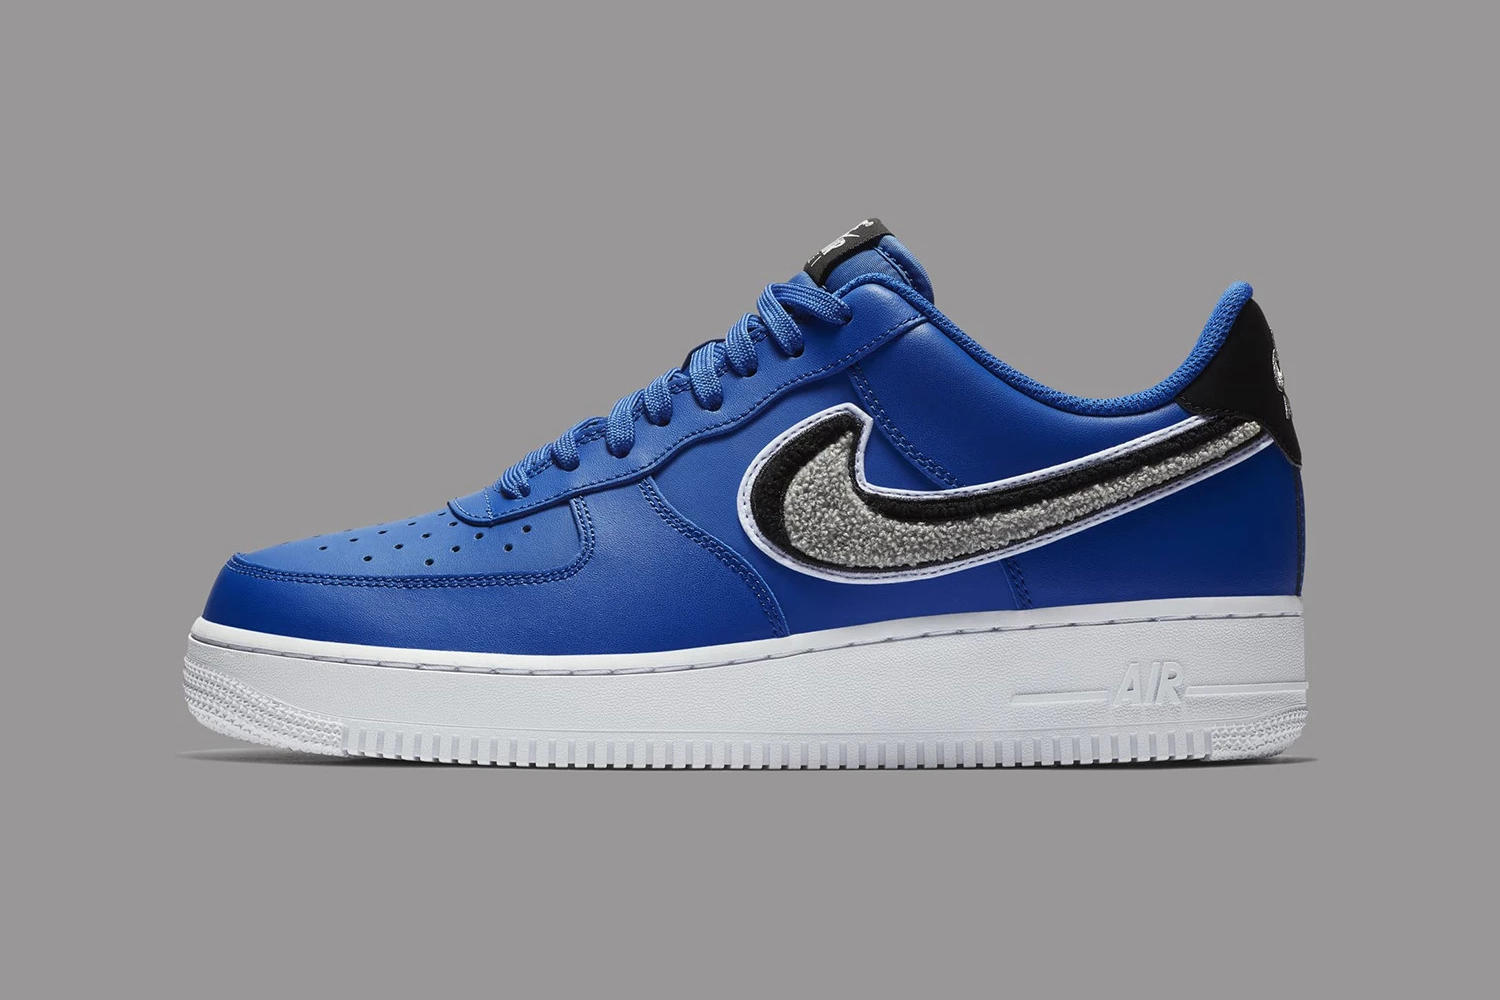 cc0dfe61e65a Nike Air Ultra Force Low White Blue Eyes And Skin Outfits On Nike ...